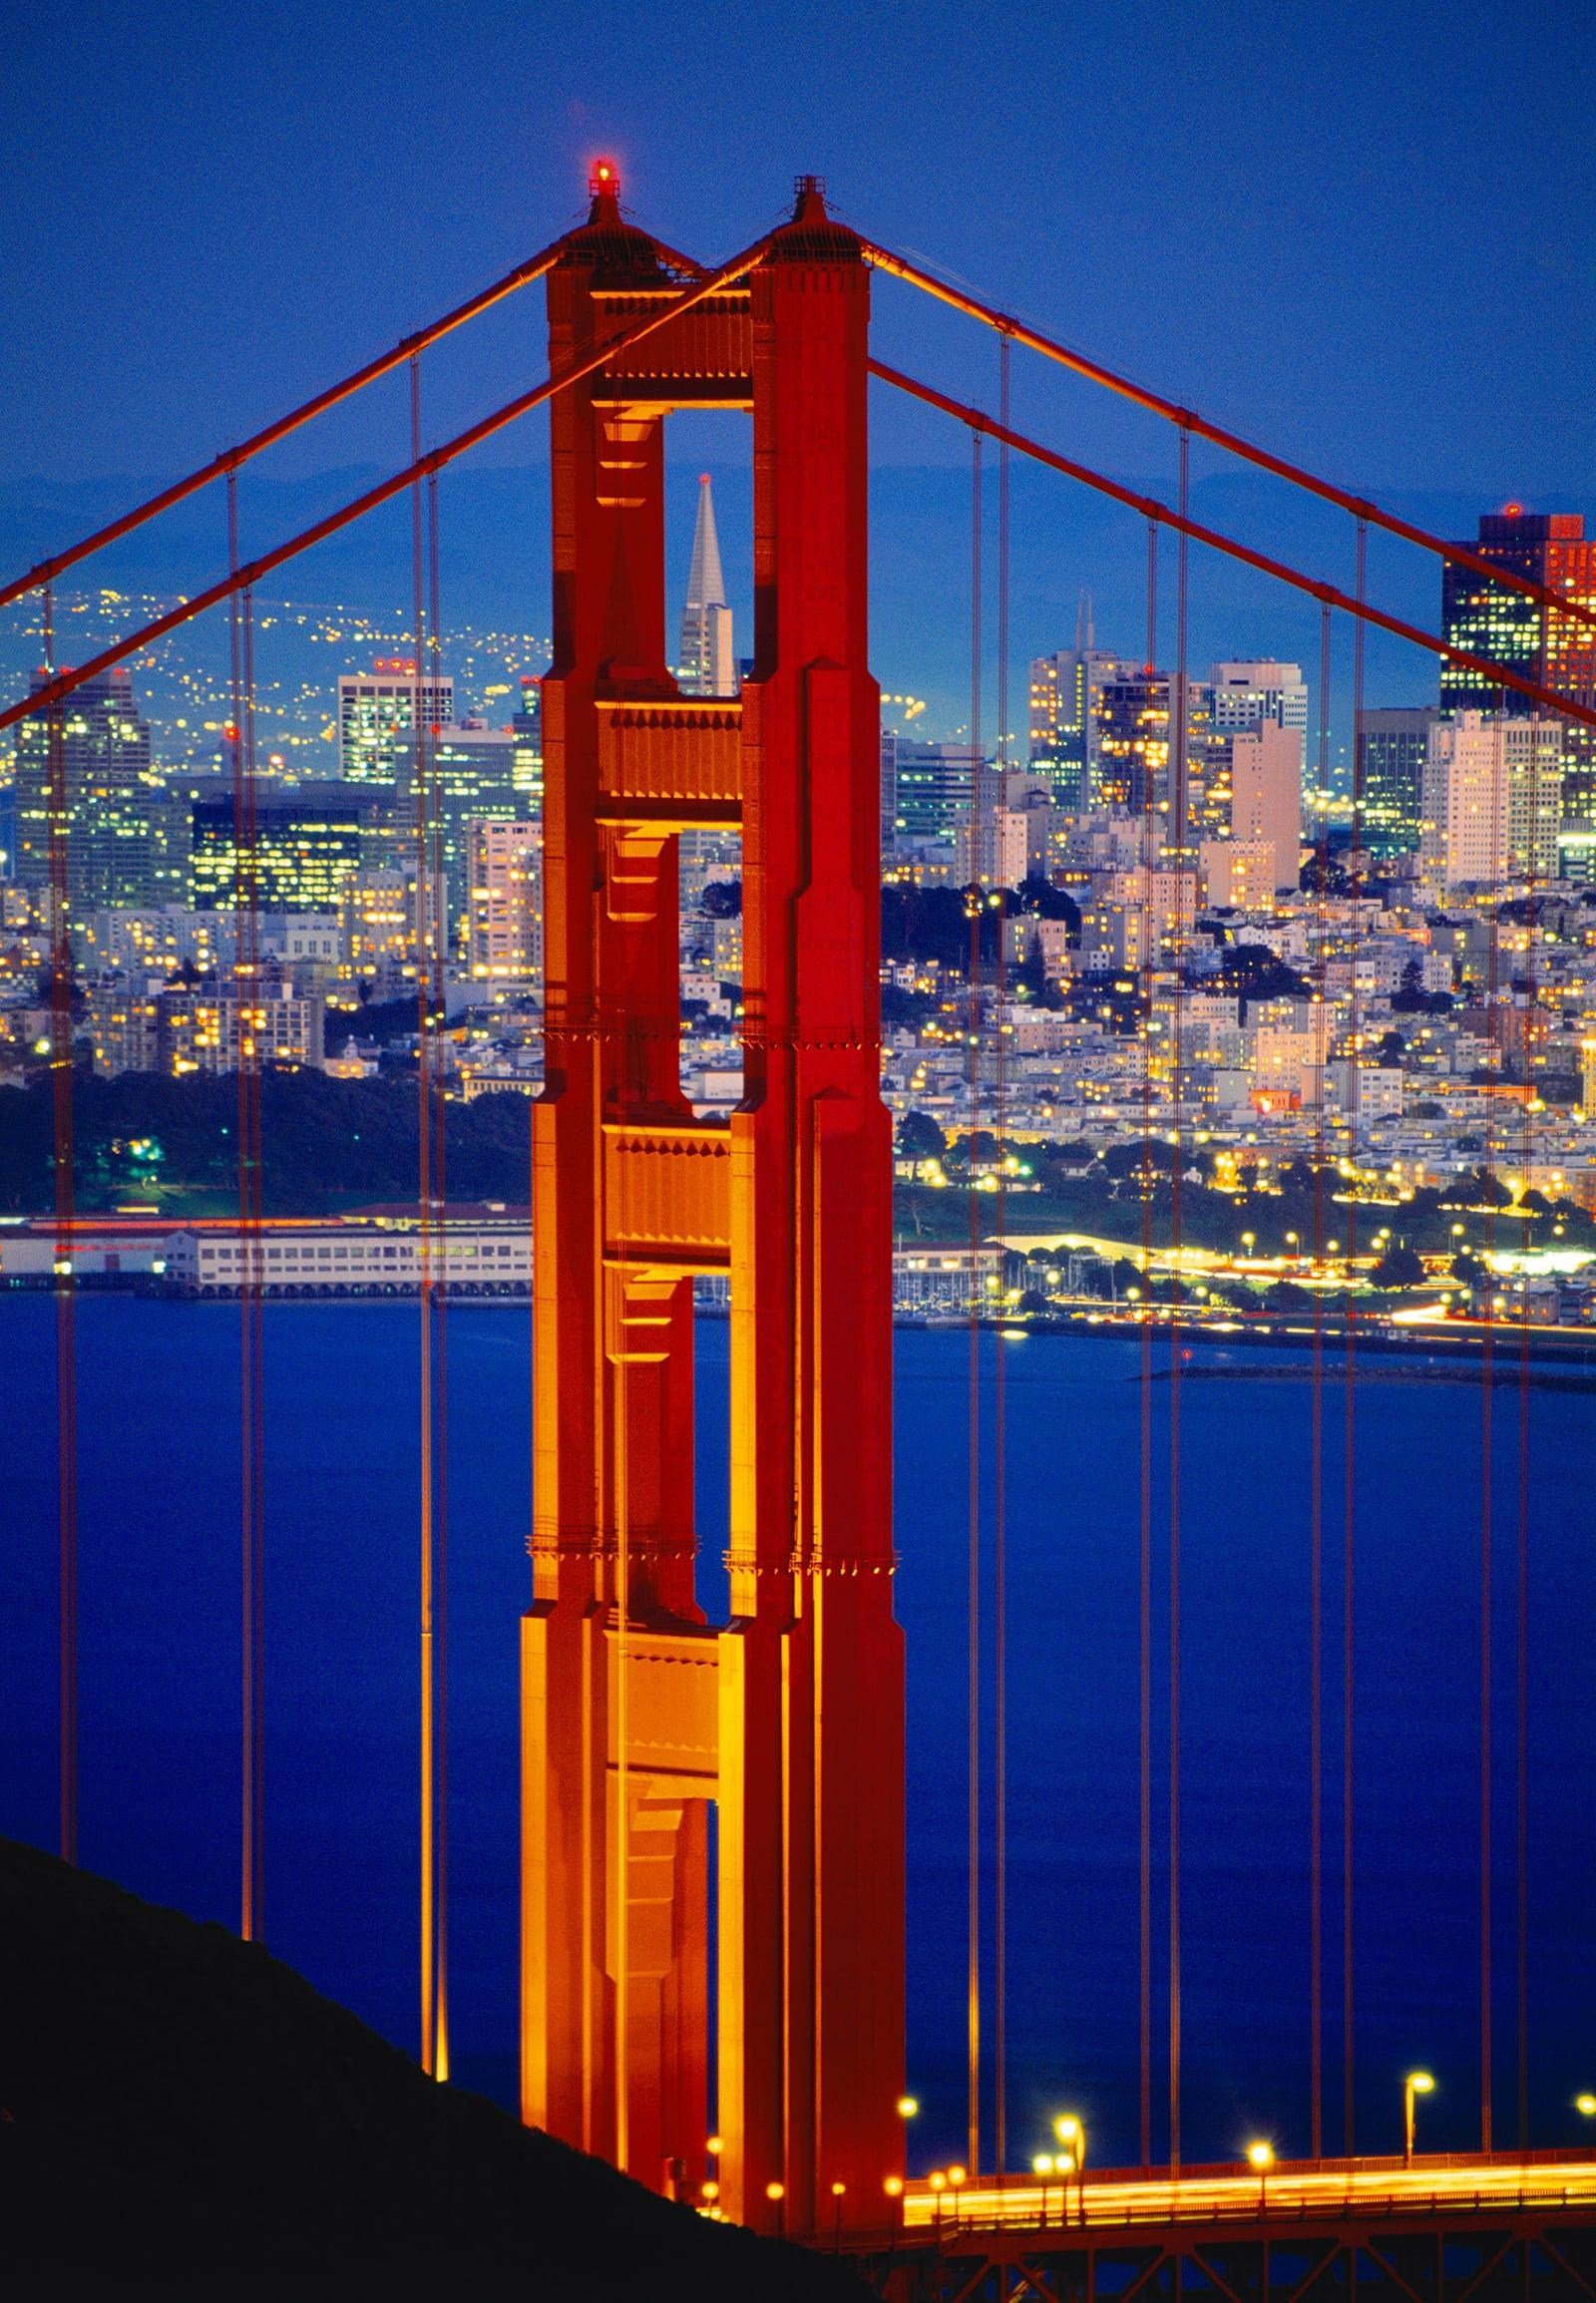 Close up of one of the Golden Gate Bridge towers at night with San Francisco lit up in the background